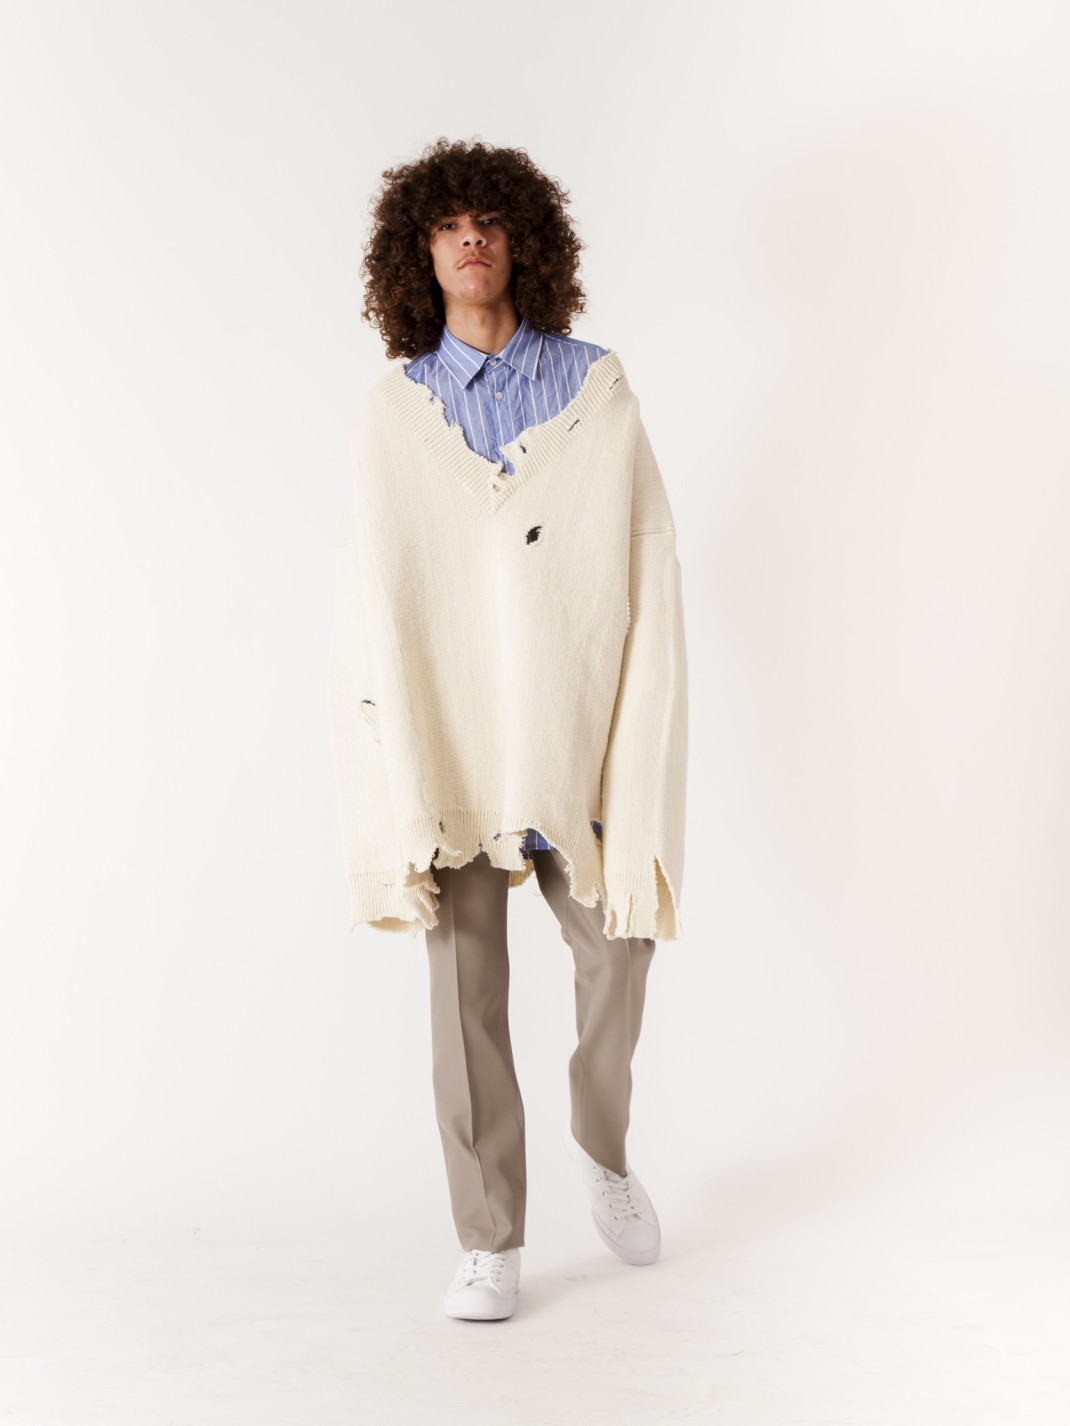 RAF_SIMONS_Oversized_Destroyed_V-Neck_Knit_Sweater_White_x-2